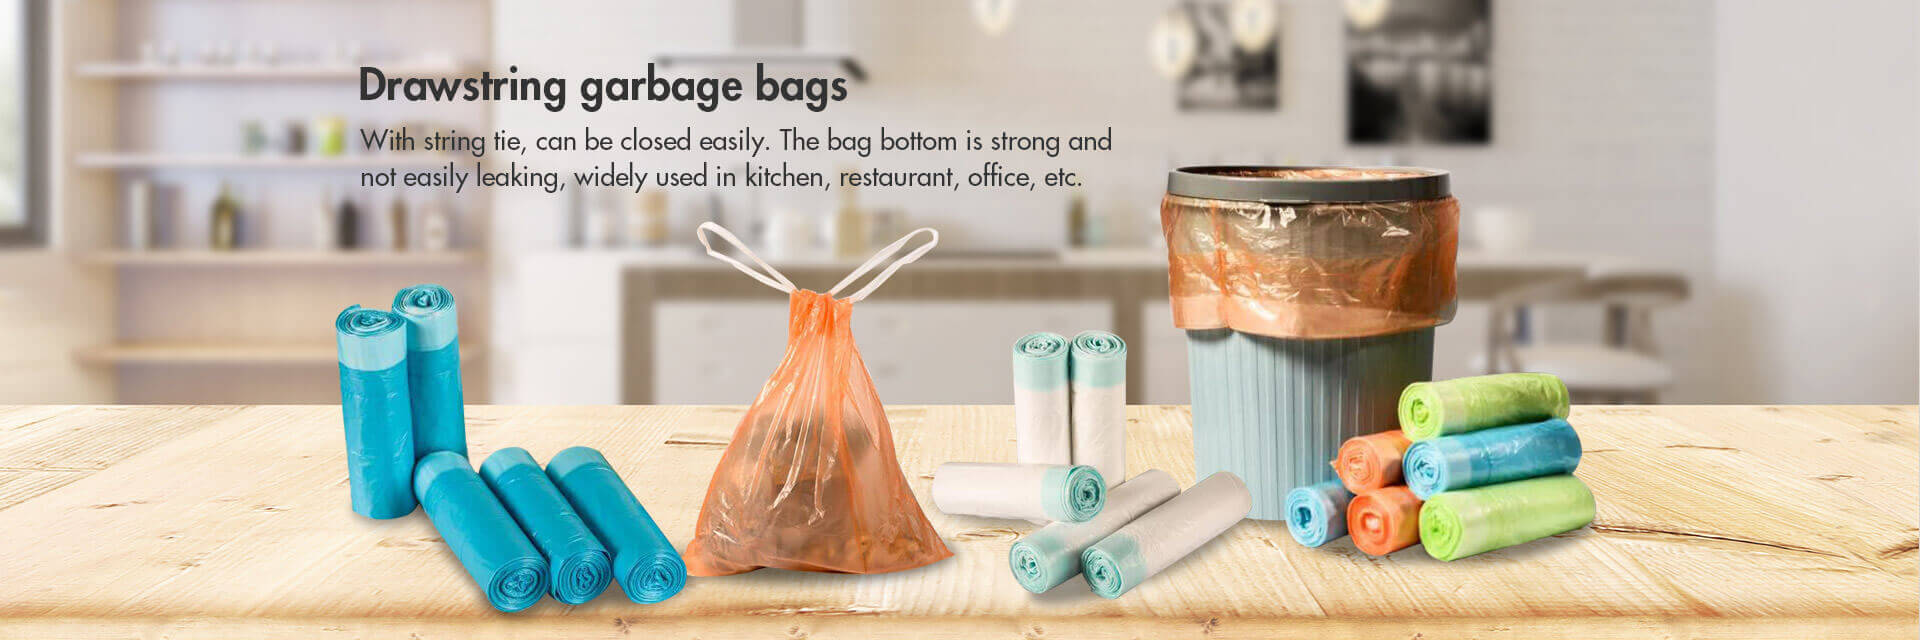 Drawstring Garbage Bag